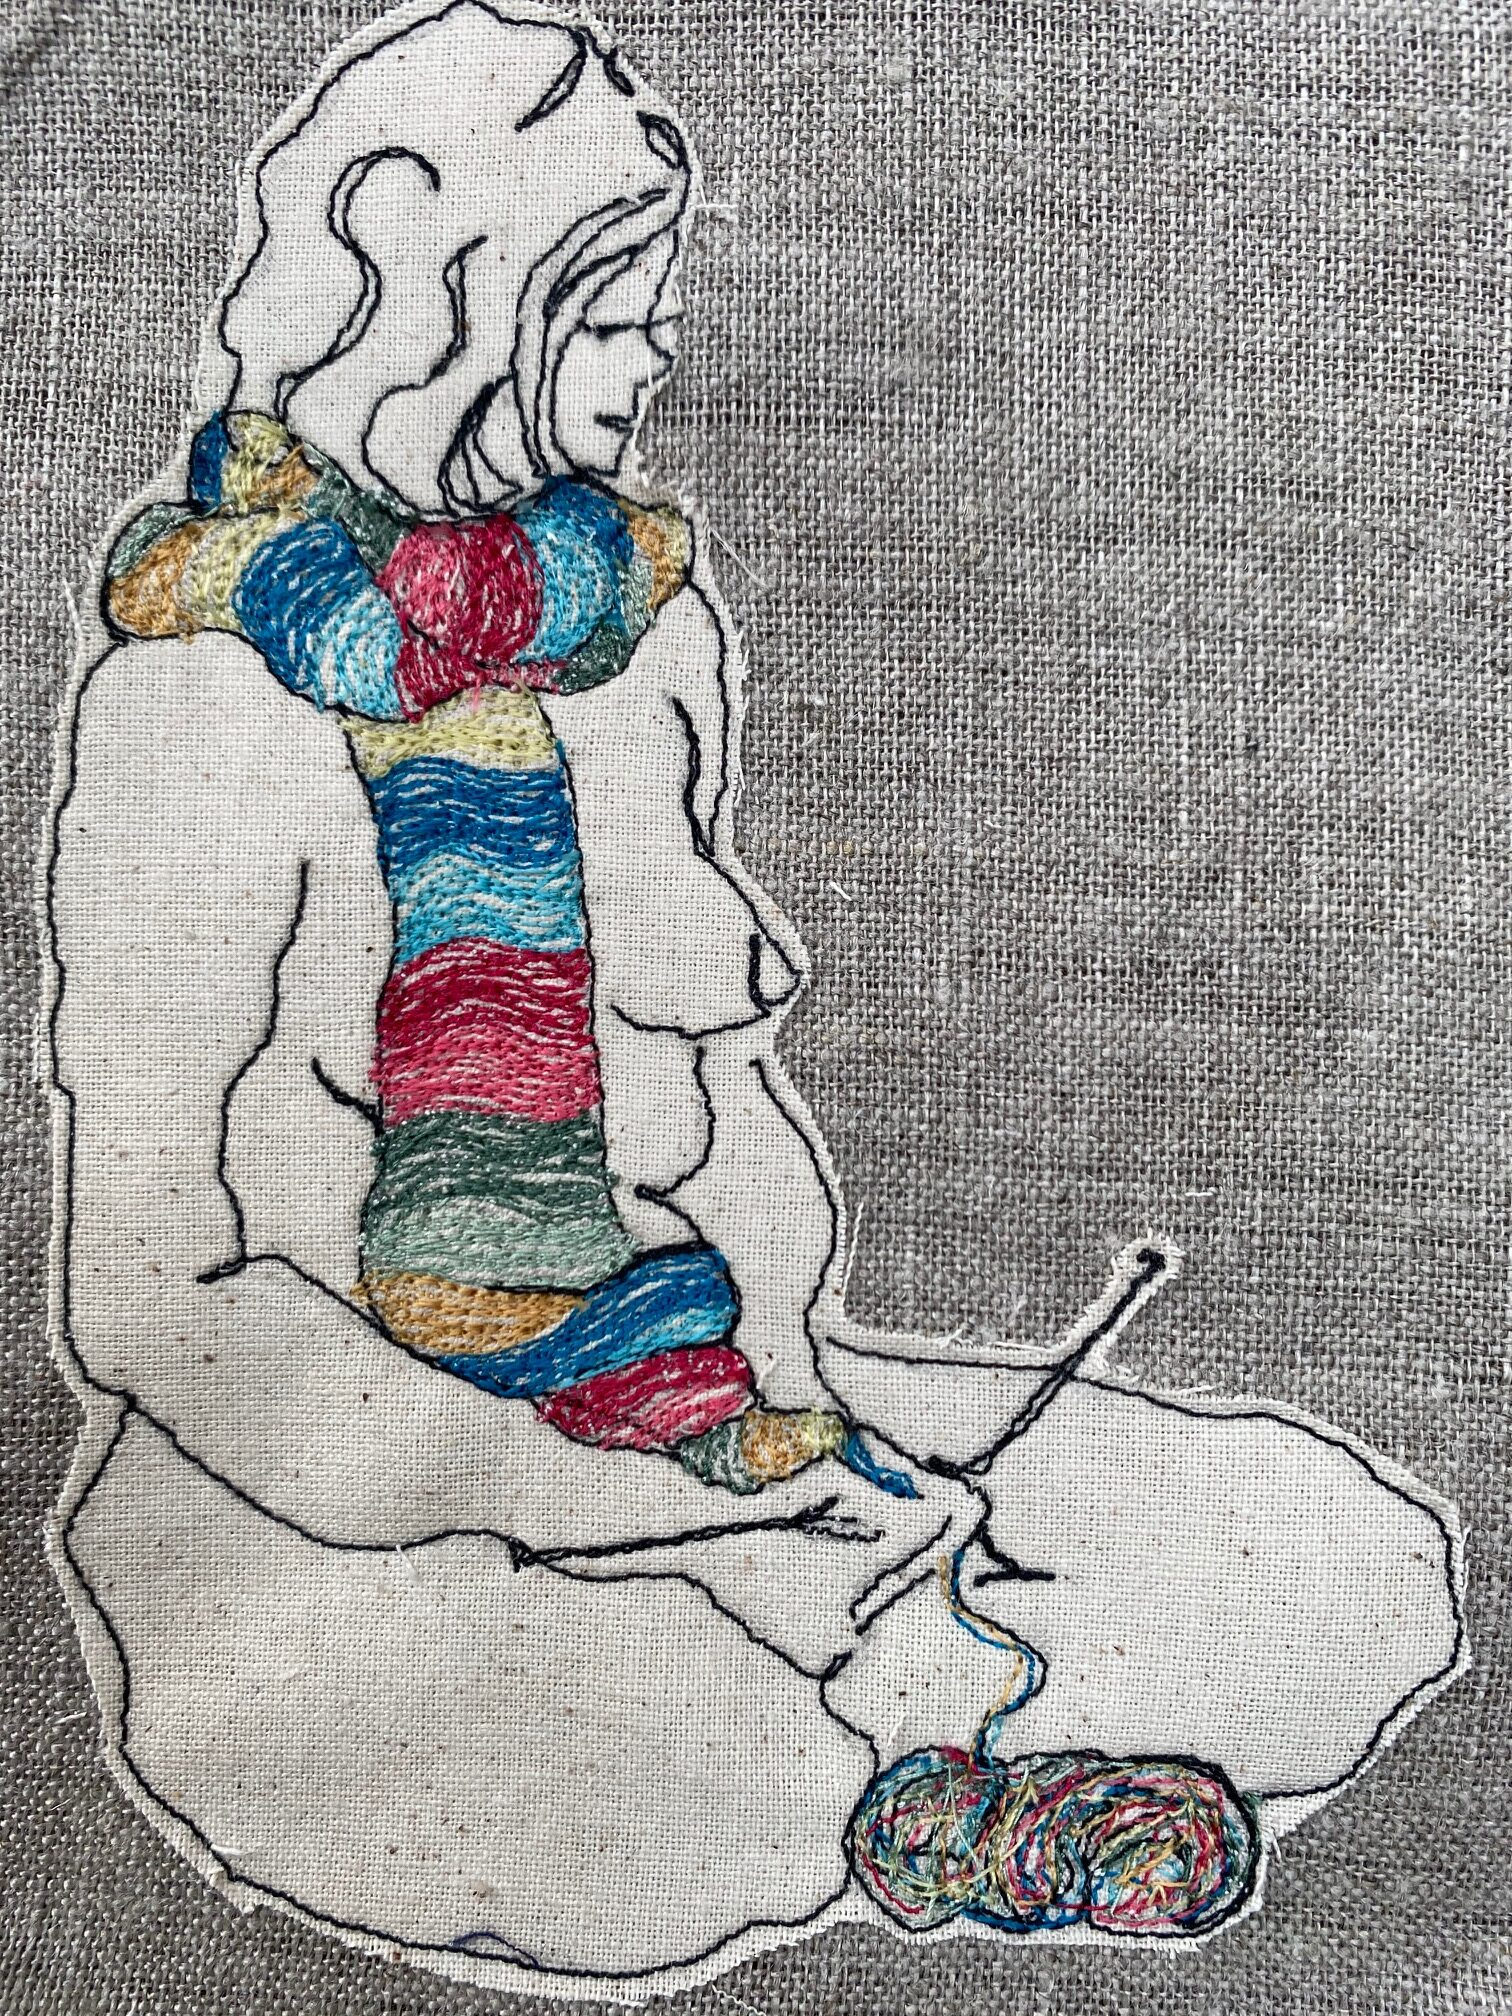 The Knitter,  Original Textile Artwork By  Juliet D Collins (Prahran)